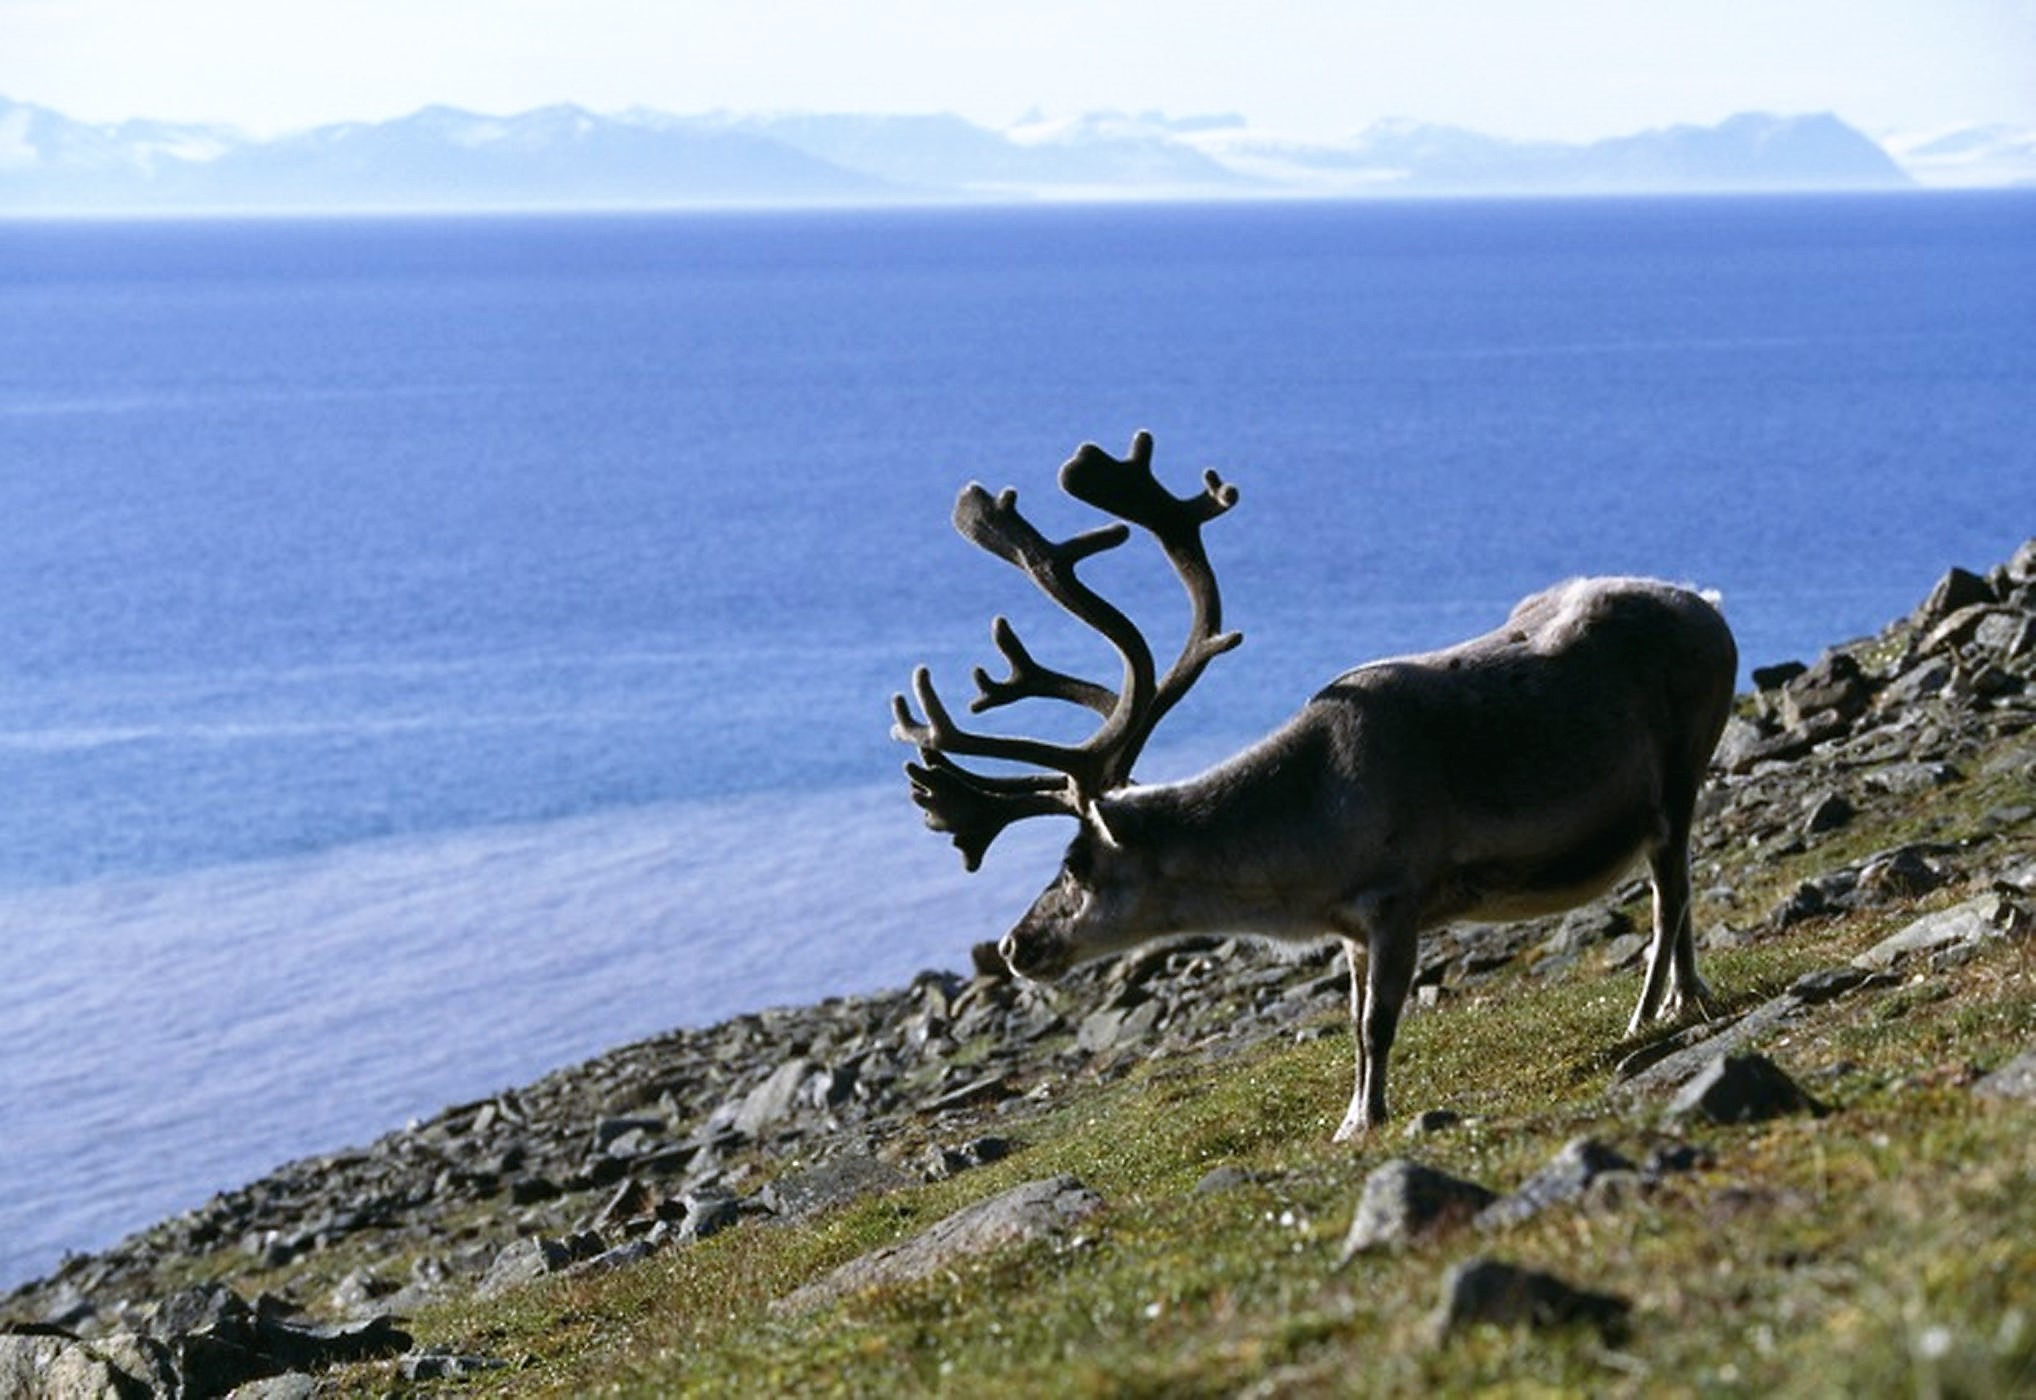 A reindeer in Norway enjoying the summer's bounty pc; Live Science